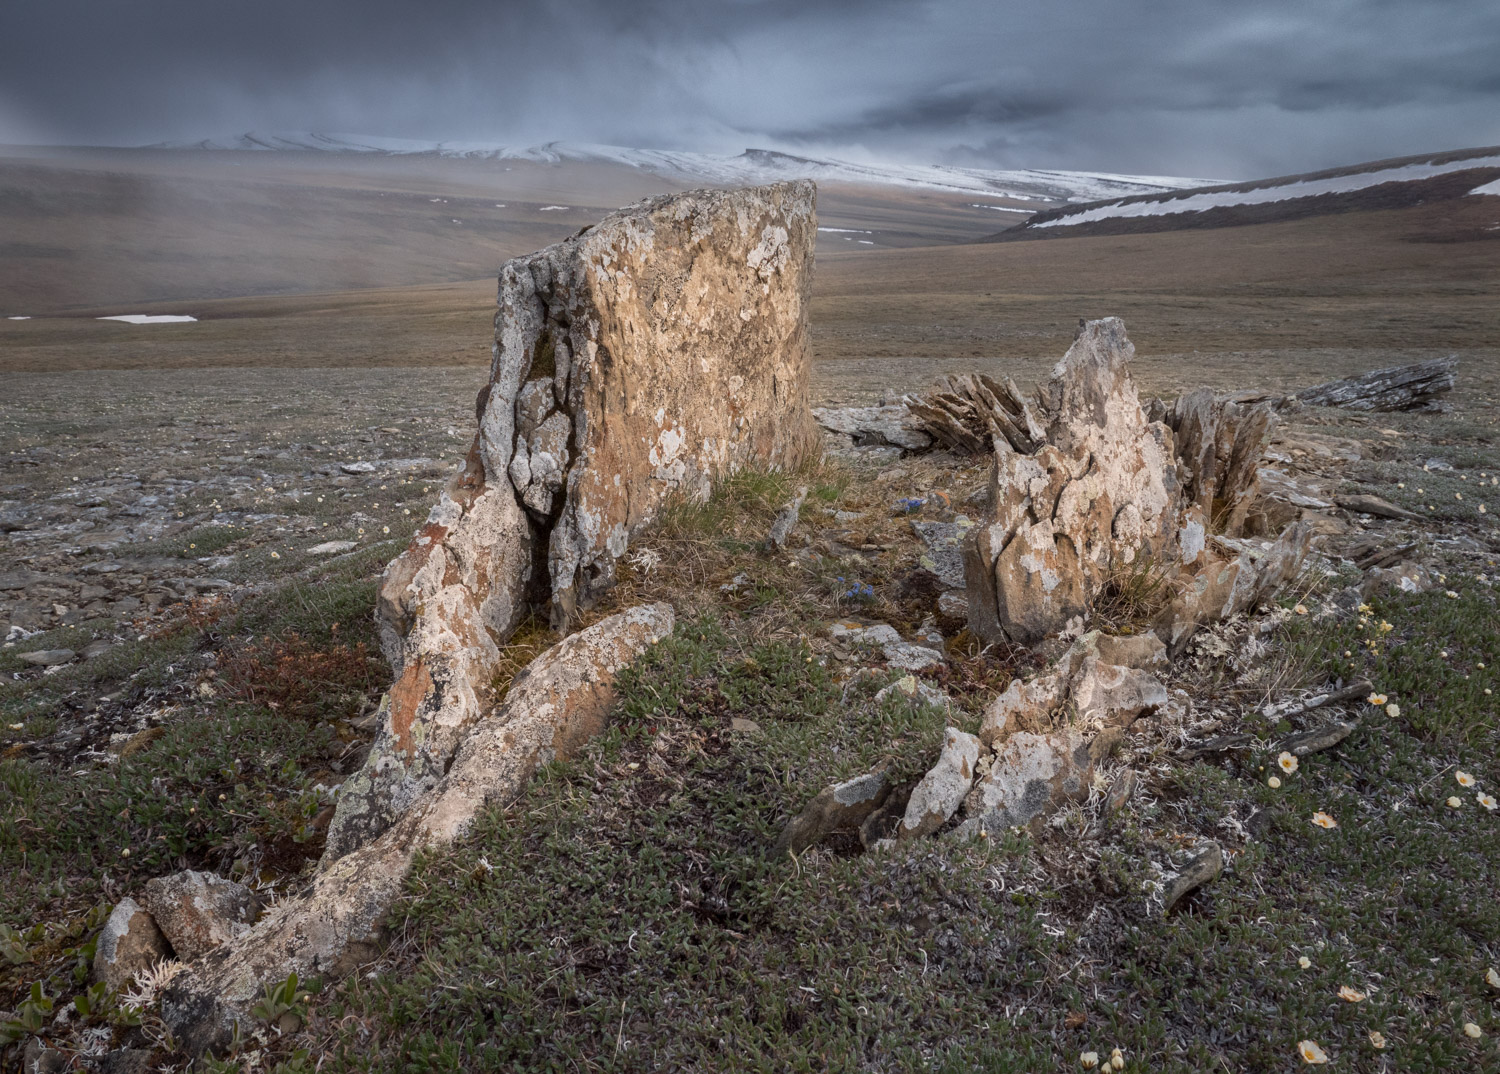 rocky outcrop and cloudy sky - Five (More) Uncomfortable Truths About Photography